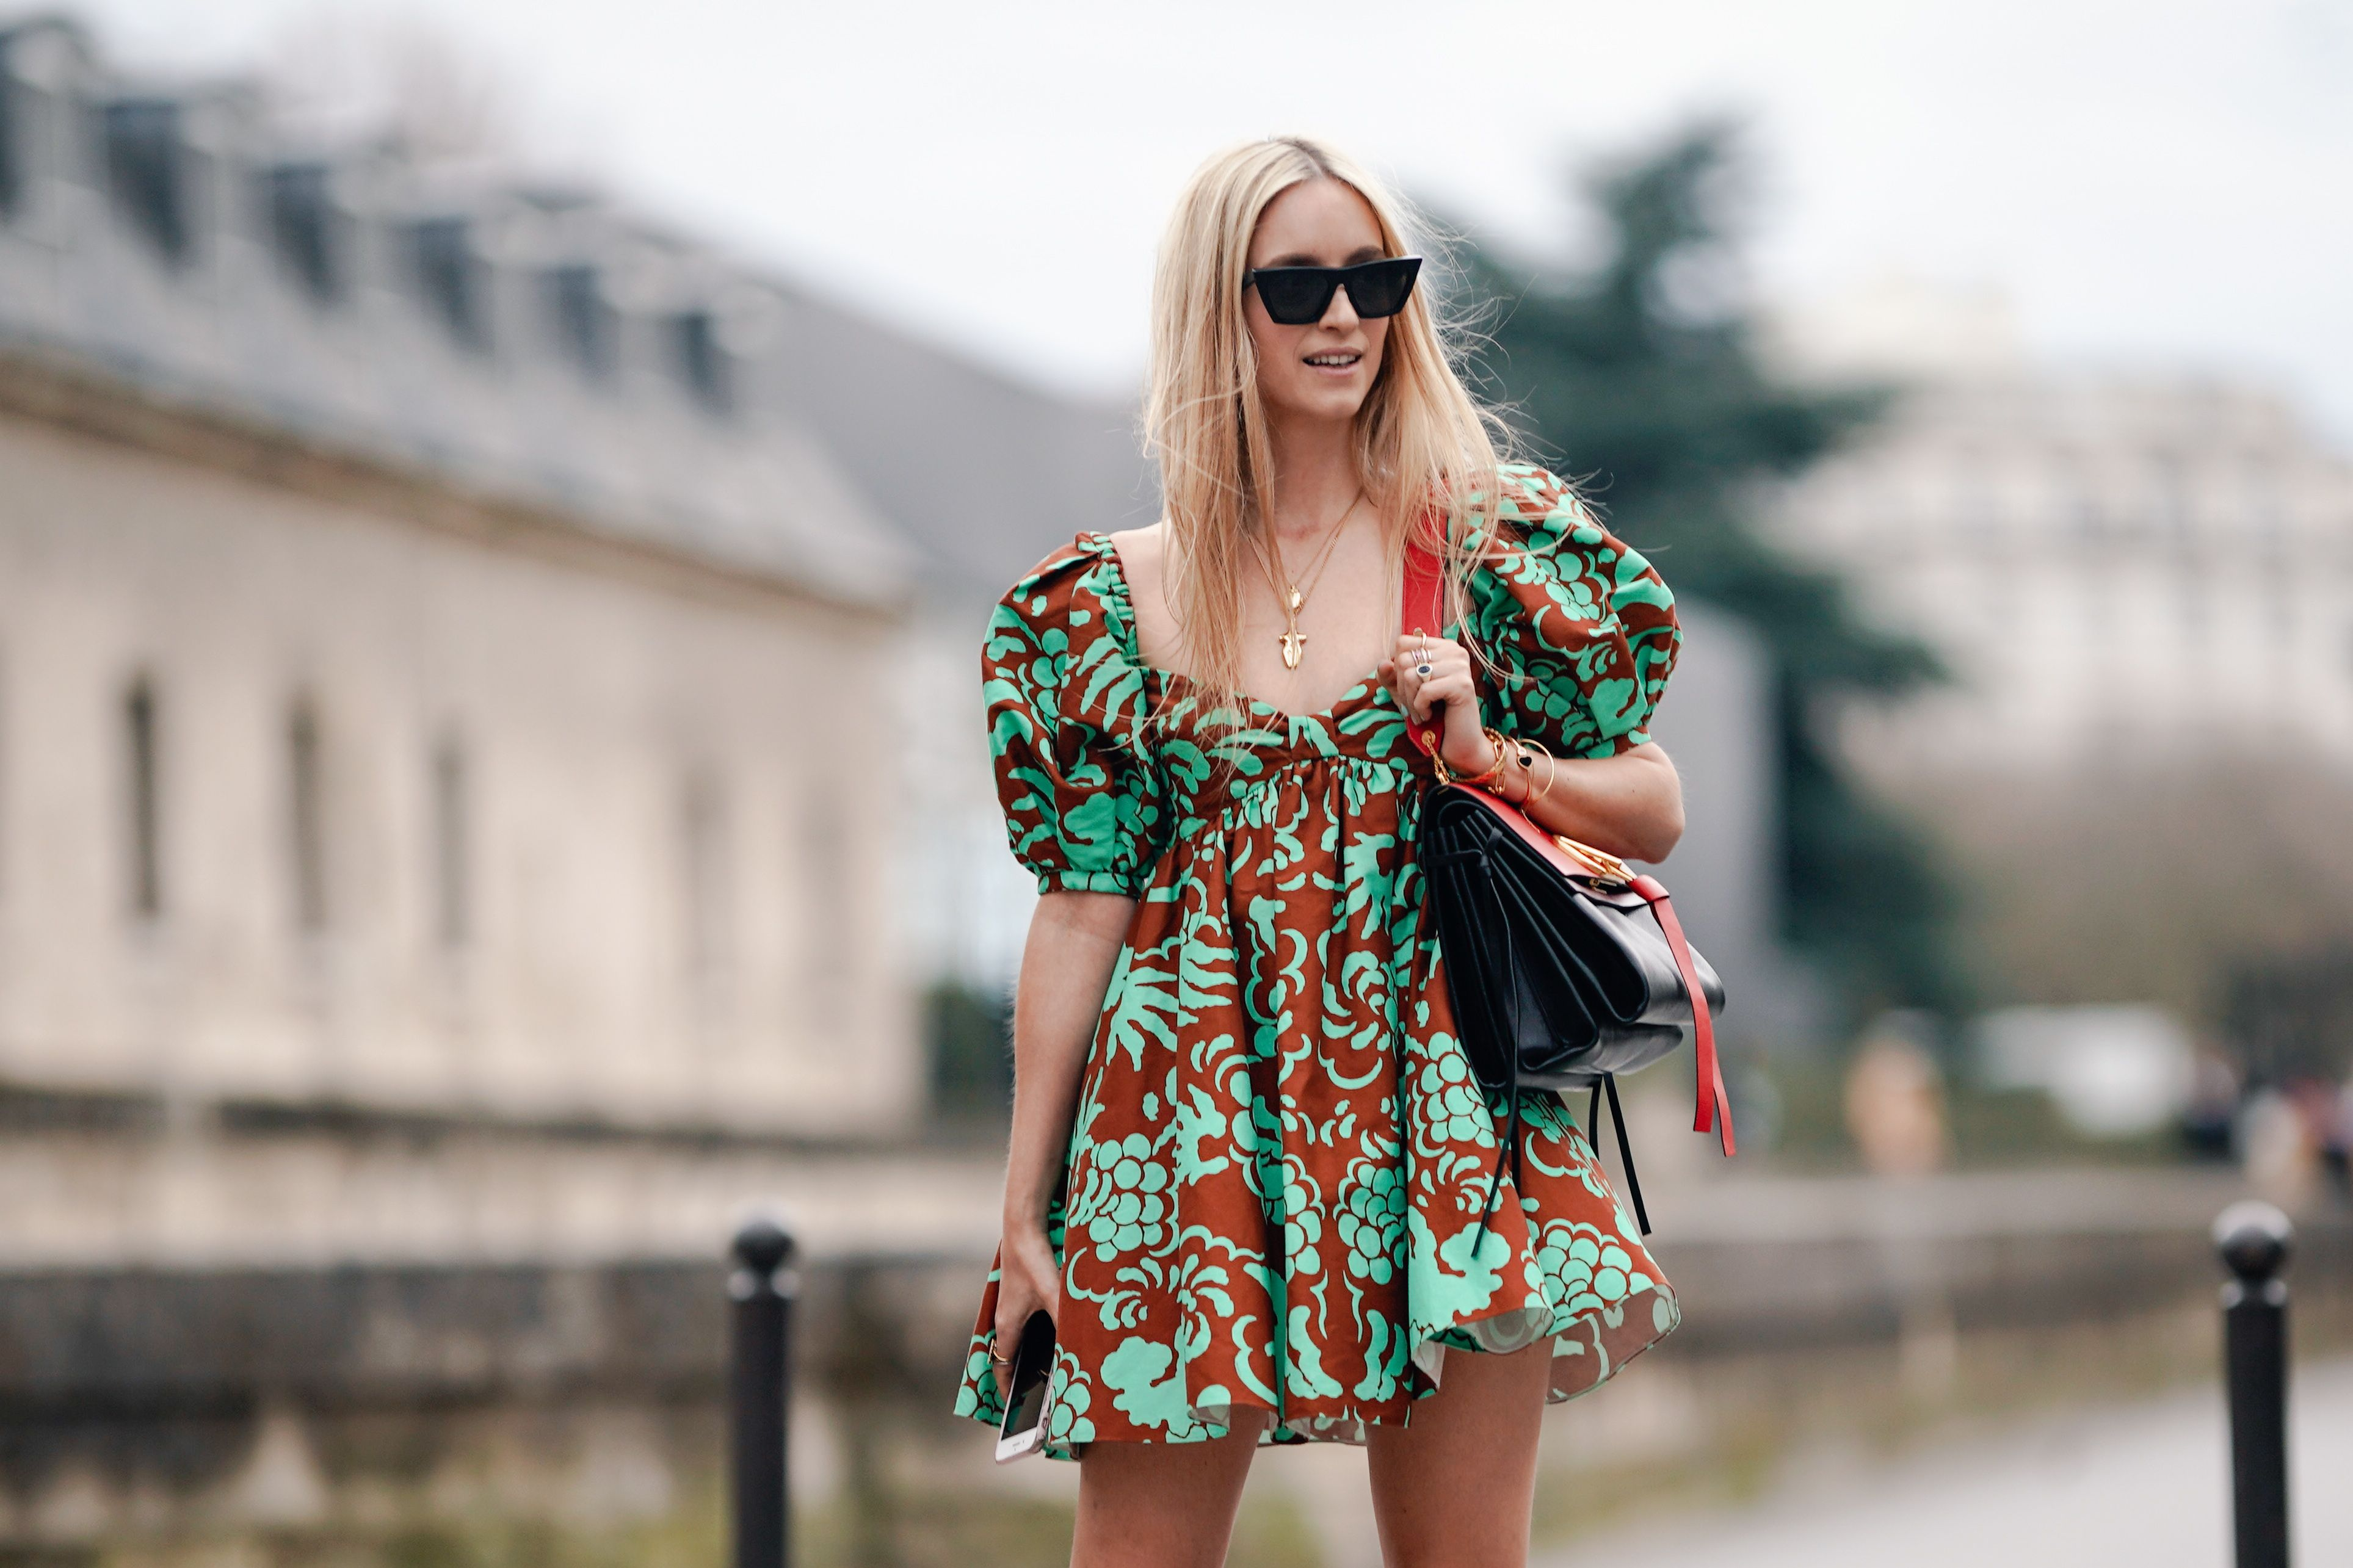 Baby Doll Dress Trend for Spring  How to Style Baby Doll Dresses